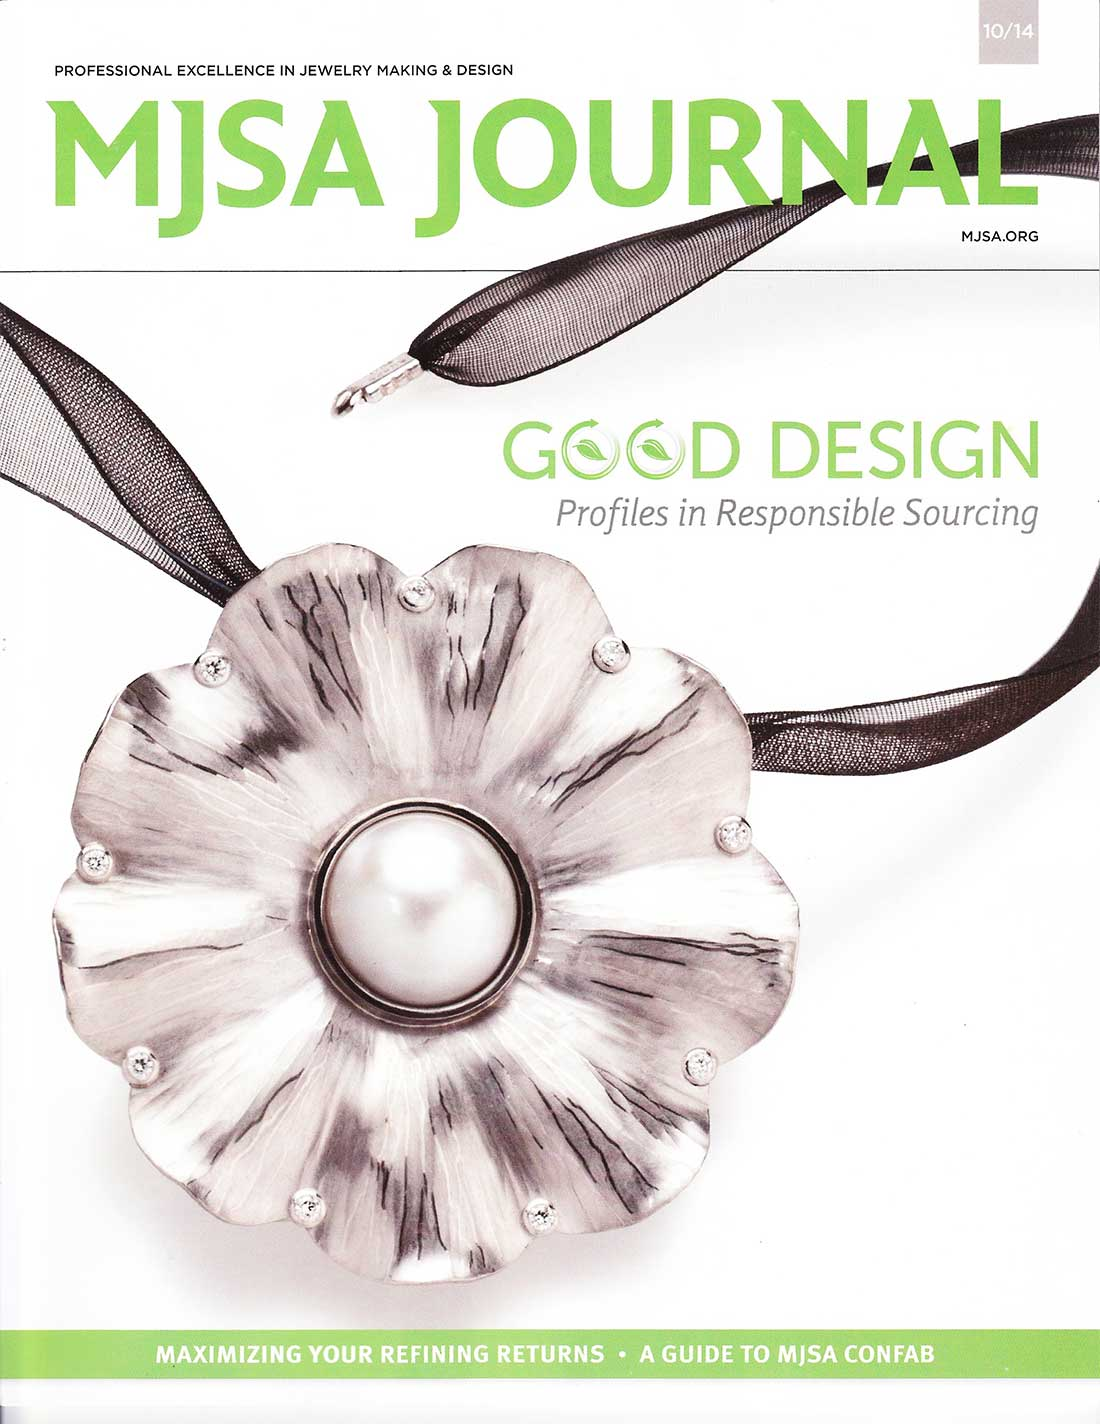 MJSA Cover 10/14